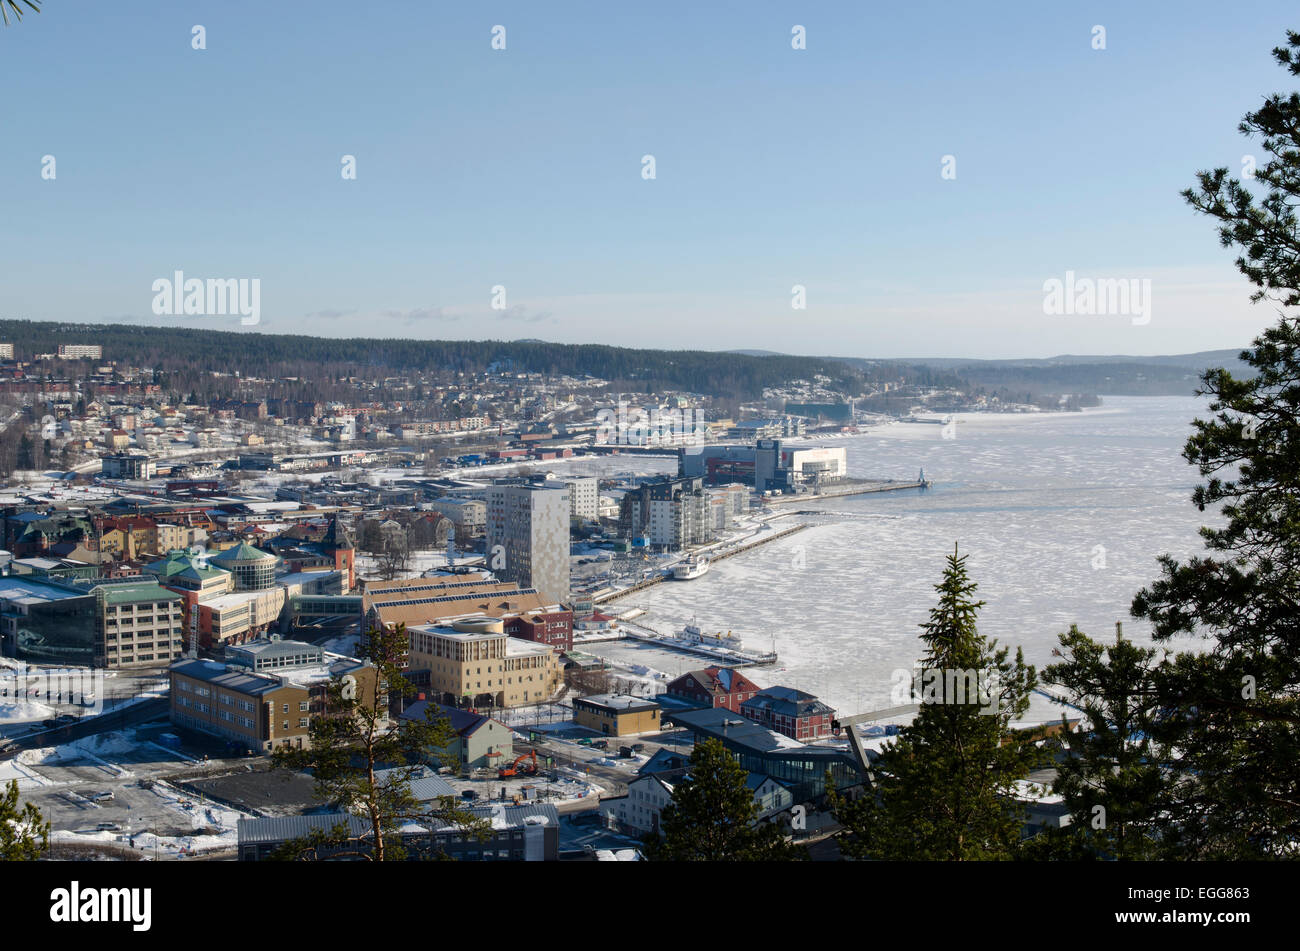 Overview of ornskoldsvik town from mountain on the south side of town 'varvsberget' - Stock Image